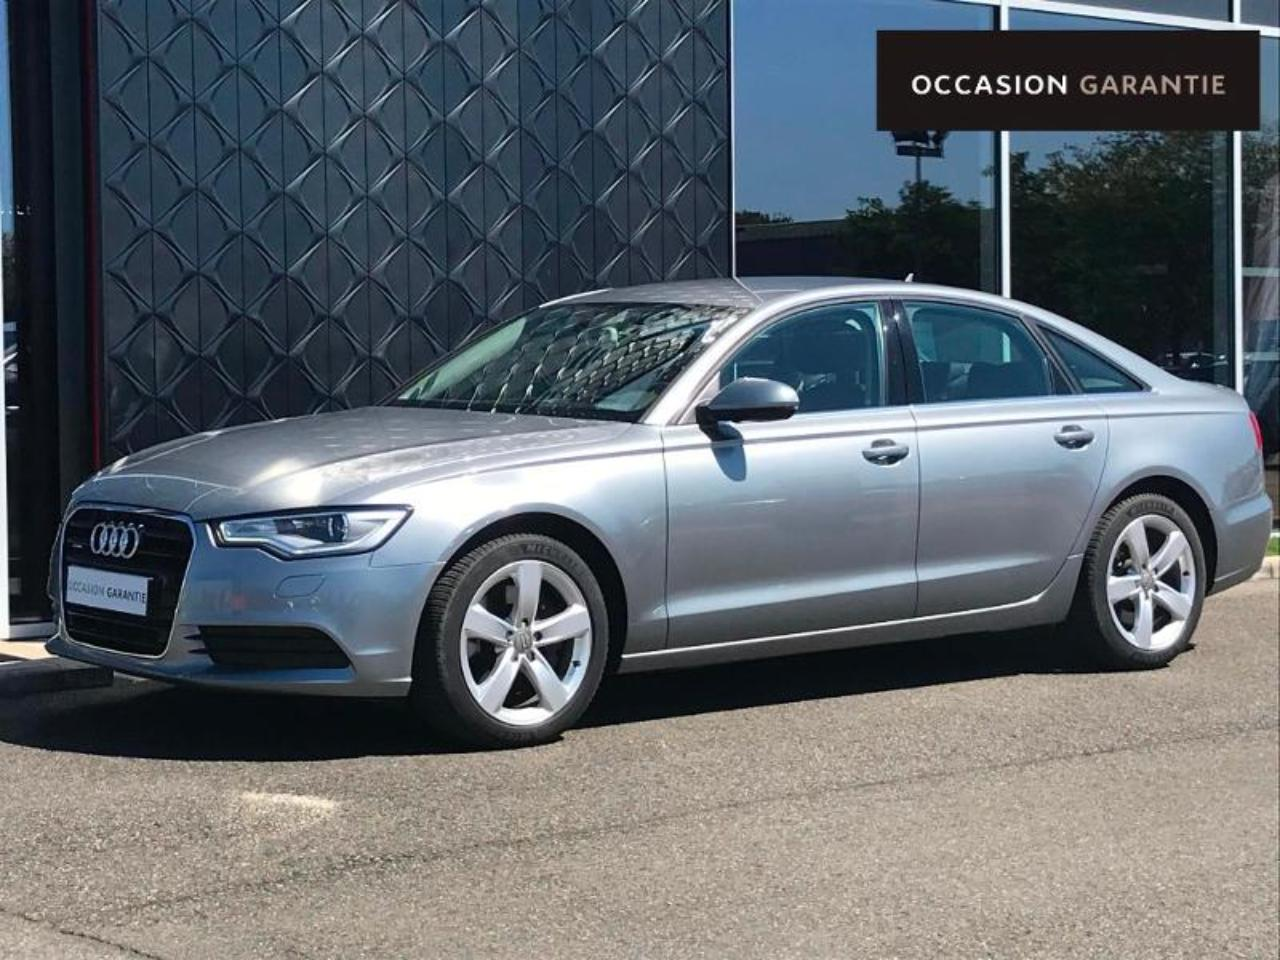 Audi A6 3.0 V6 TDI 245ch Business line quattro S tronic 7